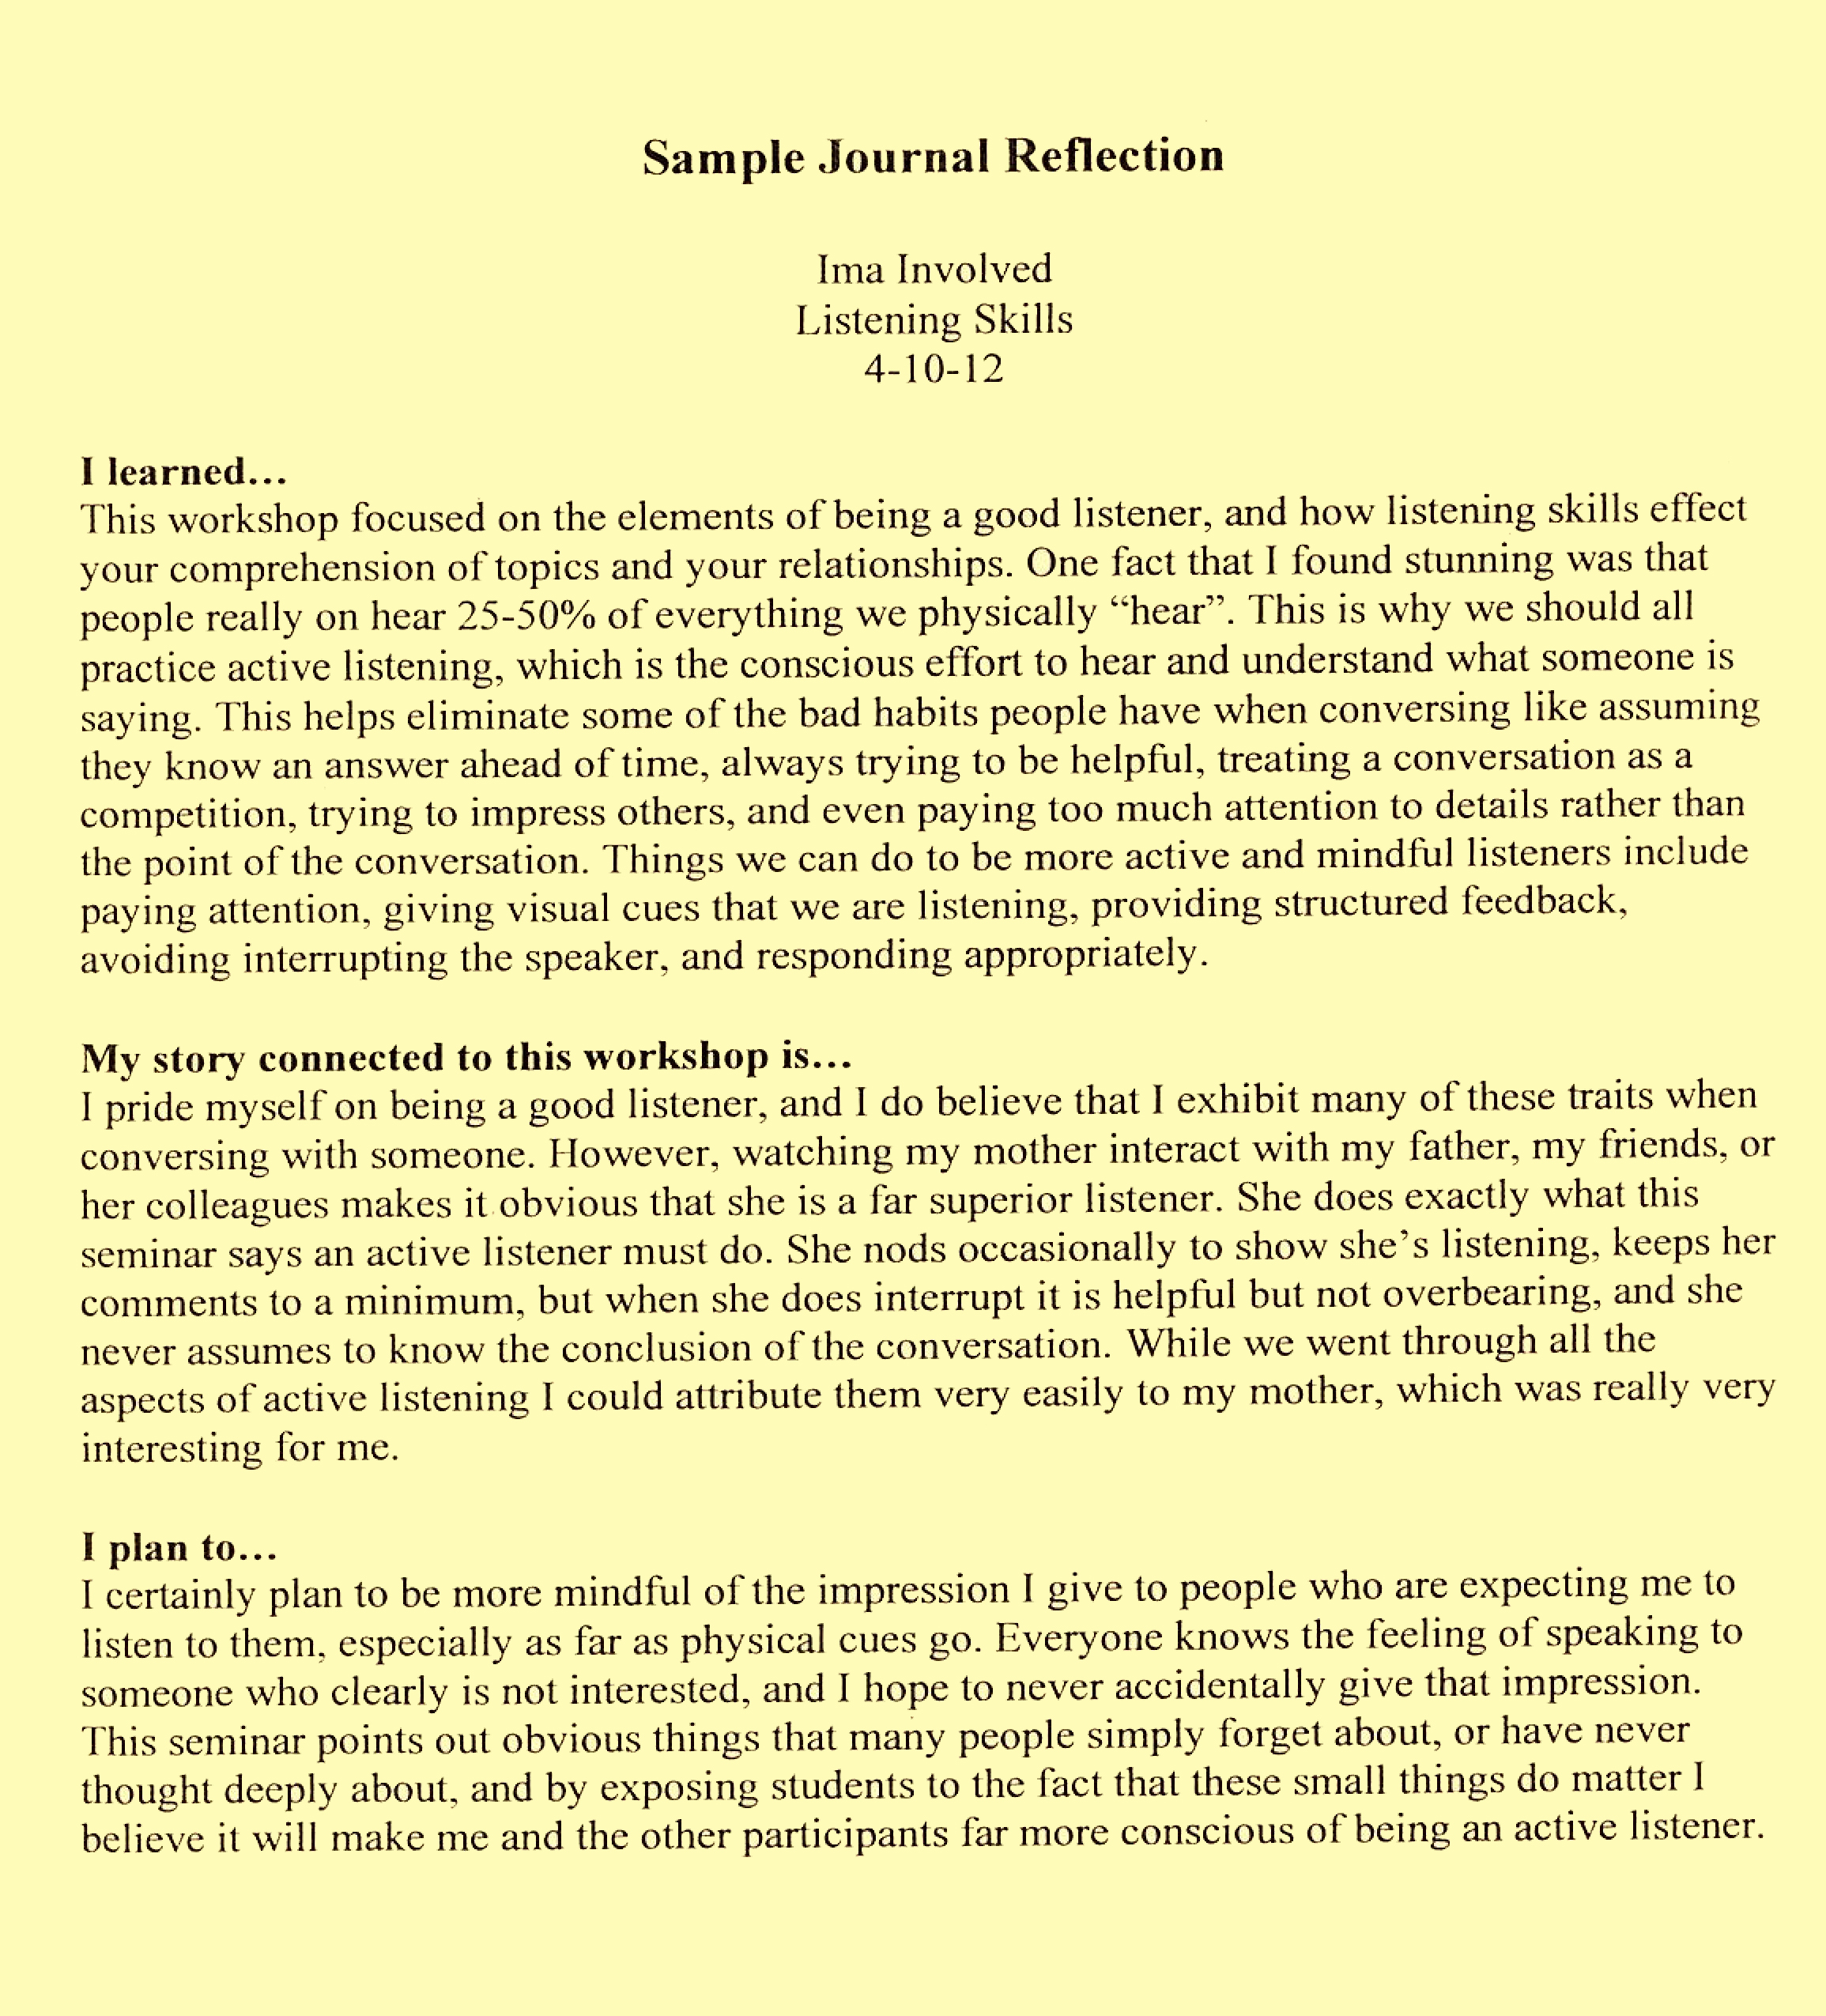 014 Essay Example Reworder Reflective Personal Writers Reflection Automatic Writing Prog Affiliate Program Summer College Programs On Indian Space Programme Programming Language For High Magnificent Best Rewriter Software Free Download App Full